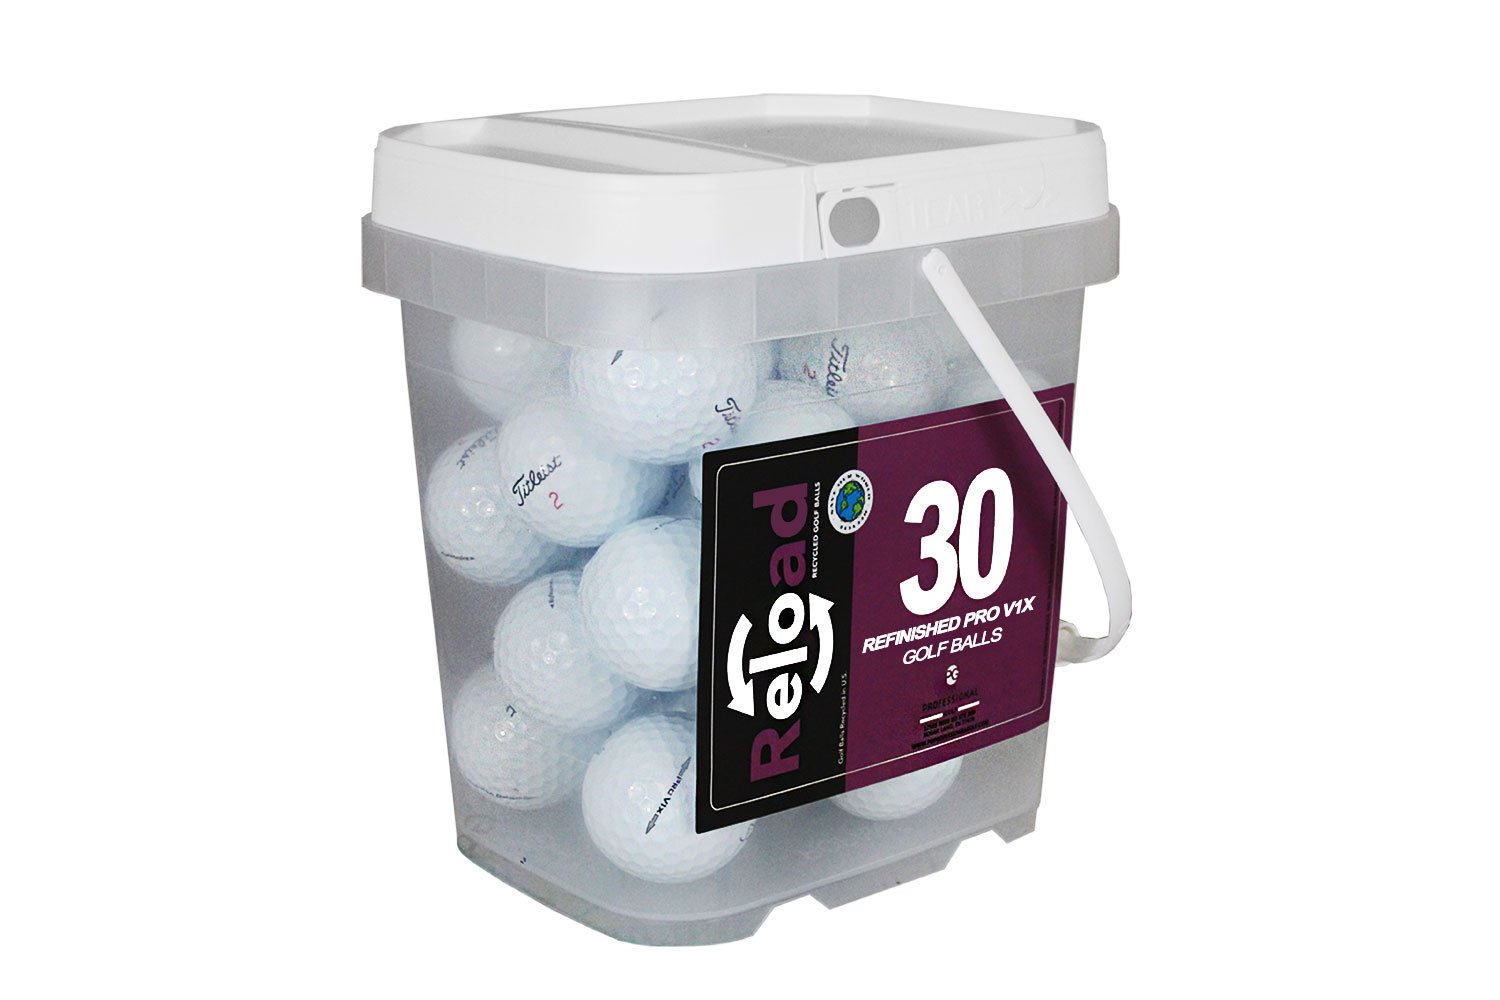 Titleist Reload Recycled Golf Balls Pro v1X Golf Balls (30 Pack) (Renewed) by Titleist